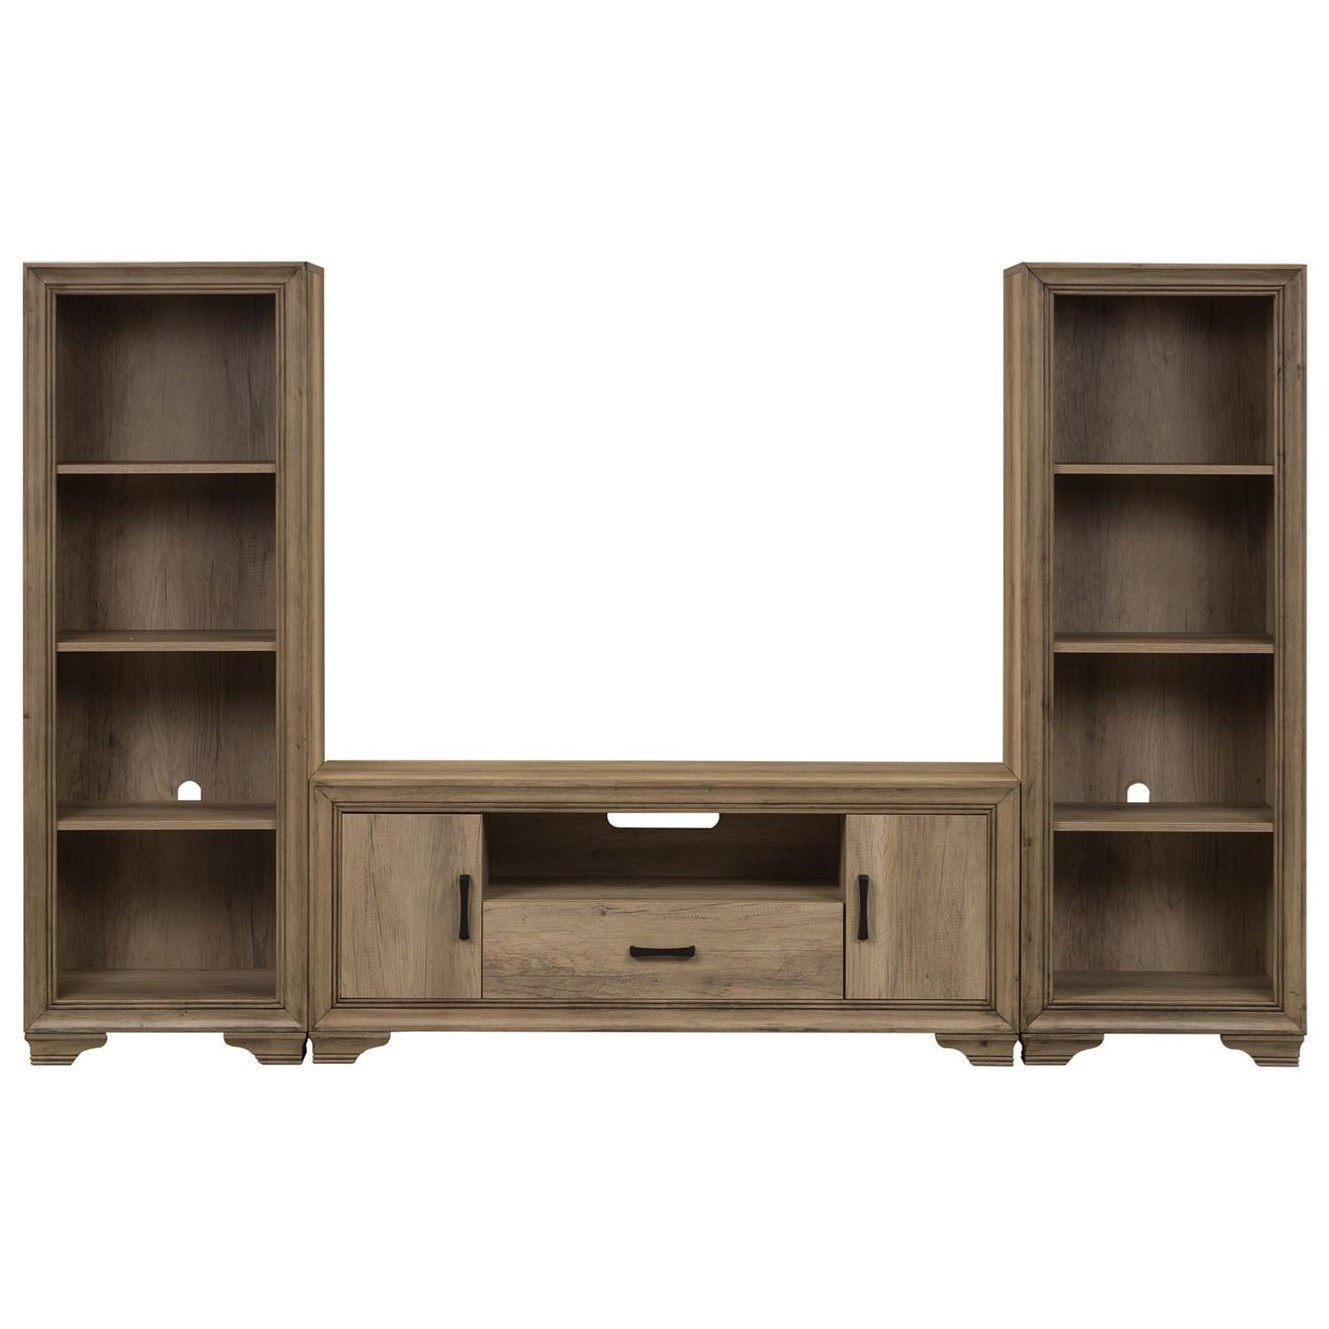 Sun Valley Entertainment Center with Piers by Liberty Furniture at Suburban Furniture